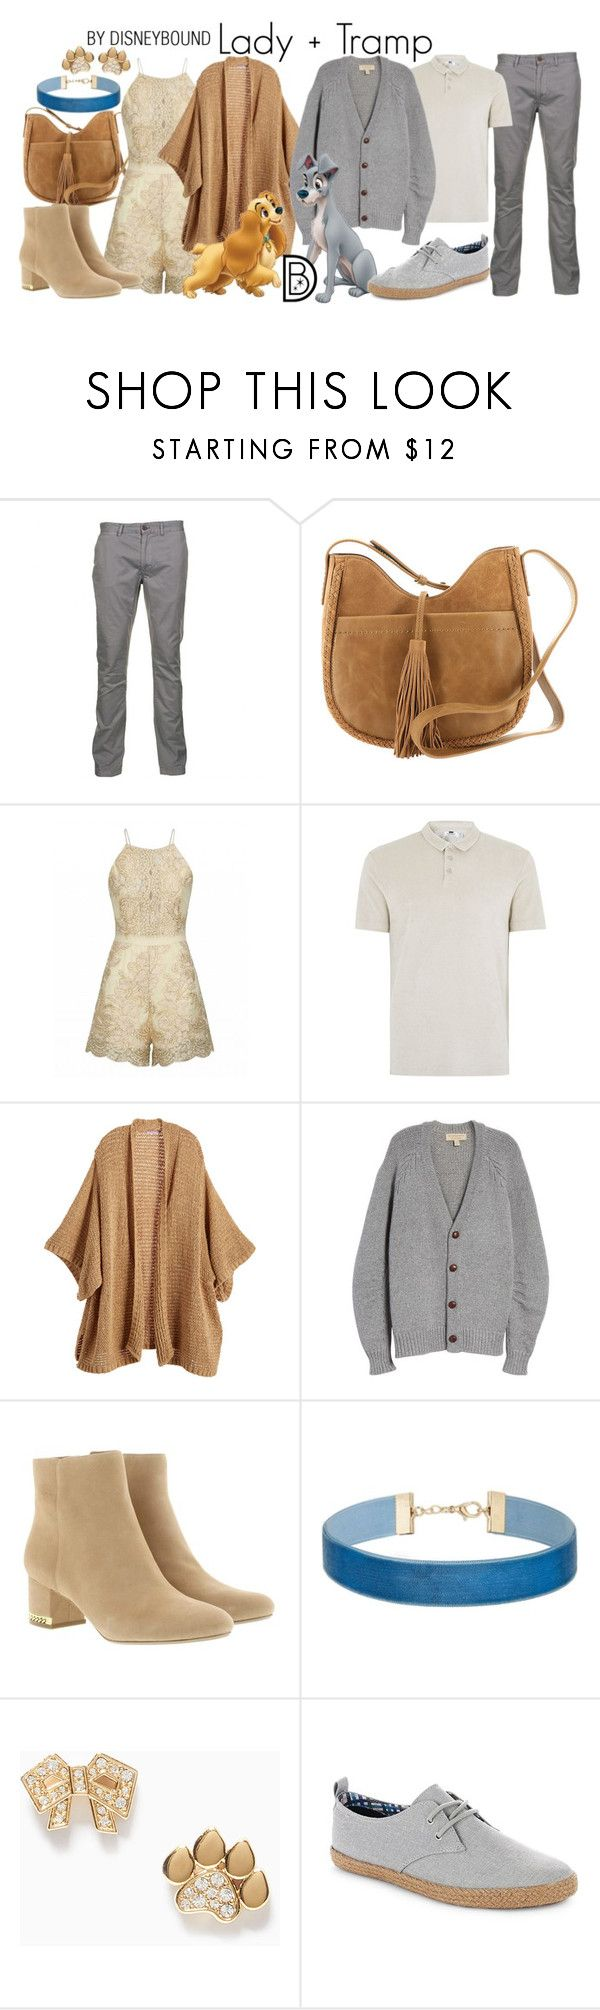 """""""Lady + Tramp"""" by leslieakay ❤ liked on Polyvore featuring Just A Cheap Shirt, Lucky Brand, Topman, Calypso St. Barth, Burberry, MICHAEL Michael Kors, Miss Selfridge, Max&Co., Ben Sherman and disney"""